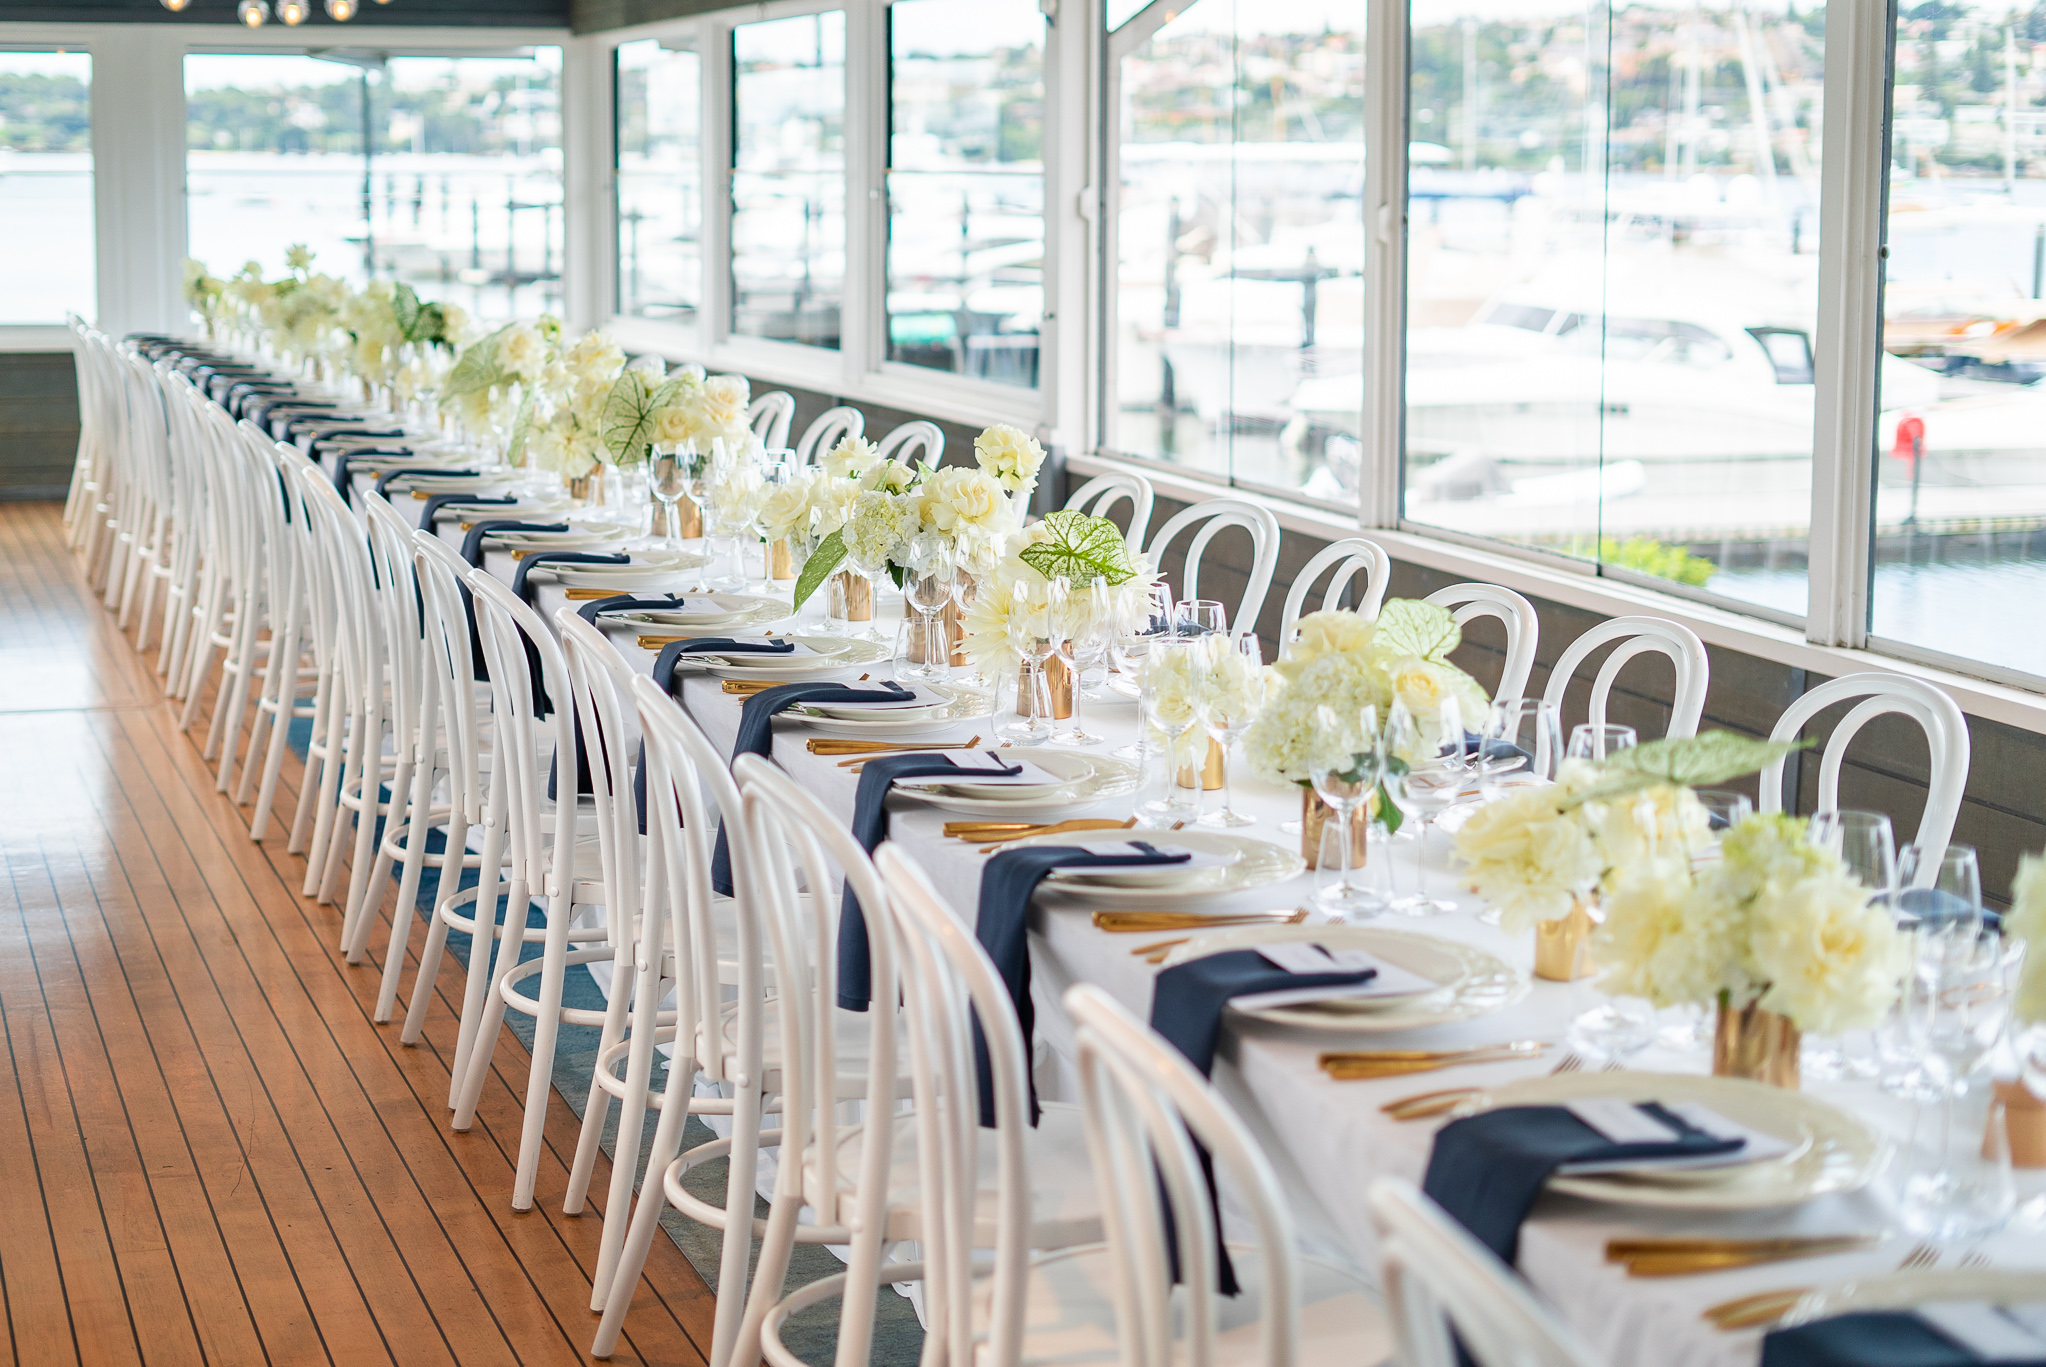 The Curated Life - Wedding Table Setting For Kate and Jono at Regatta Rose Bay .jpg